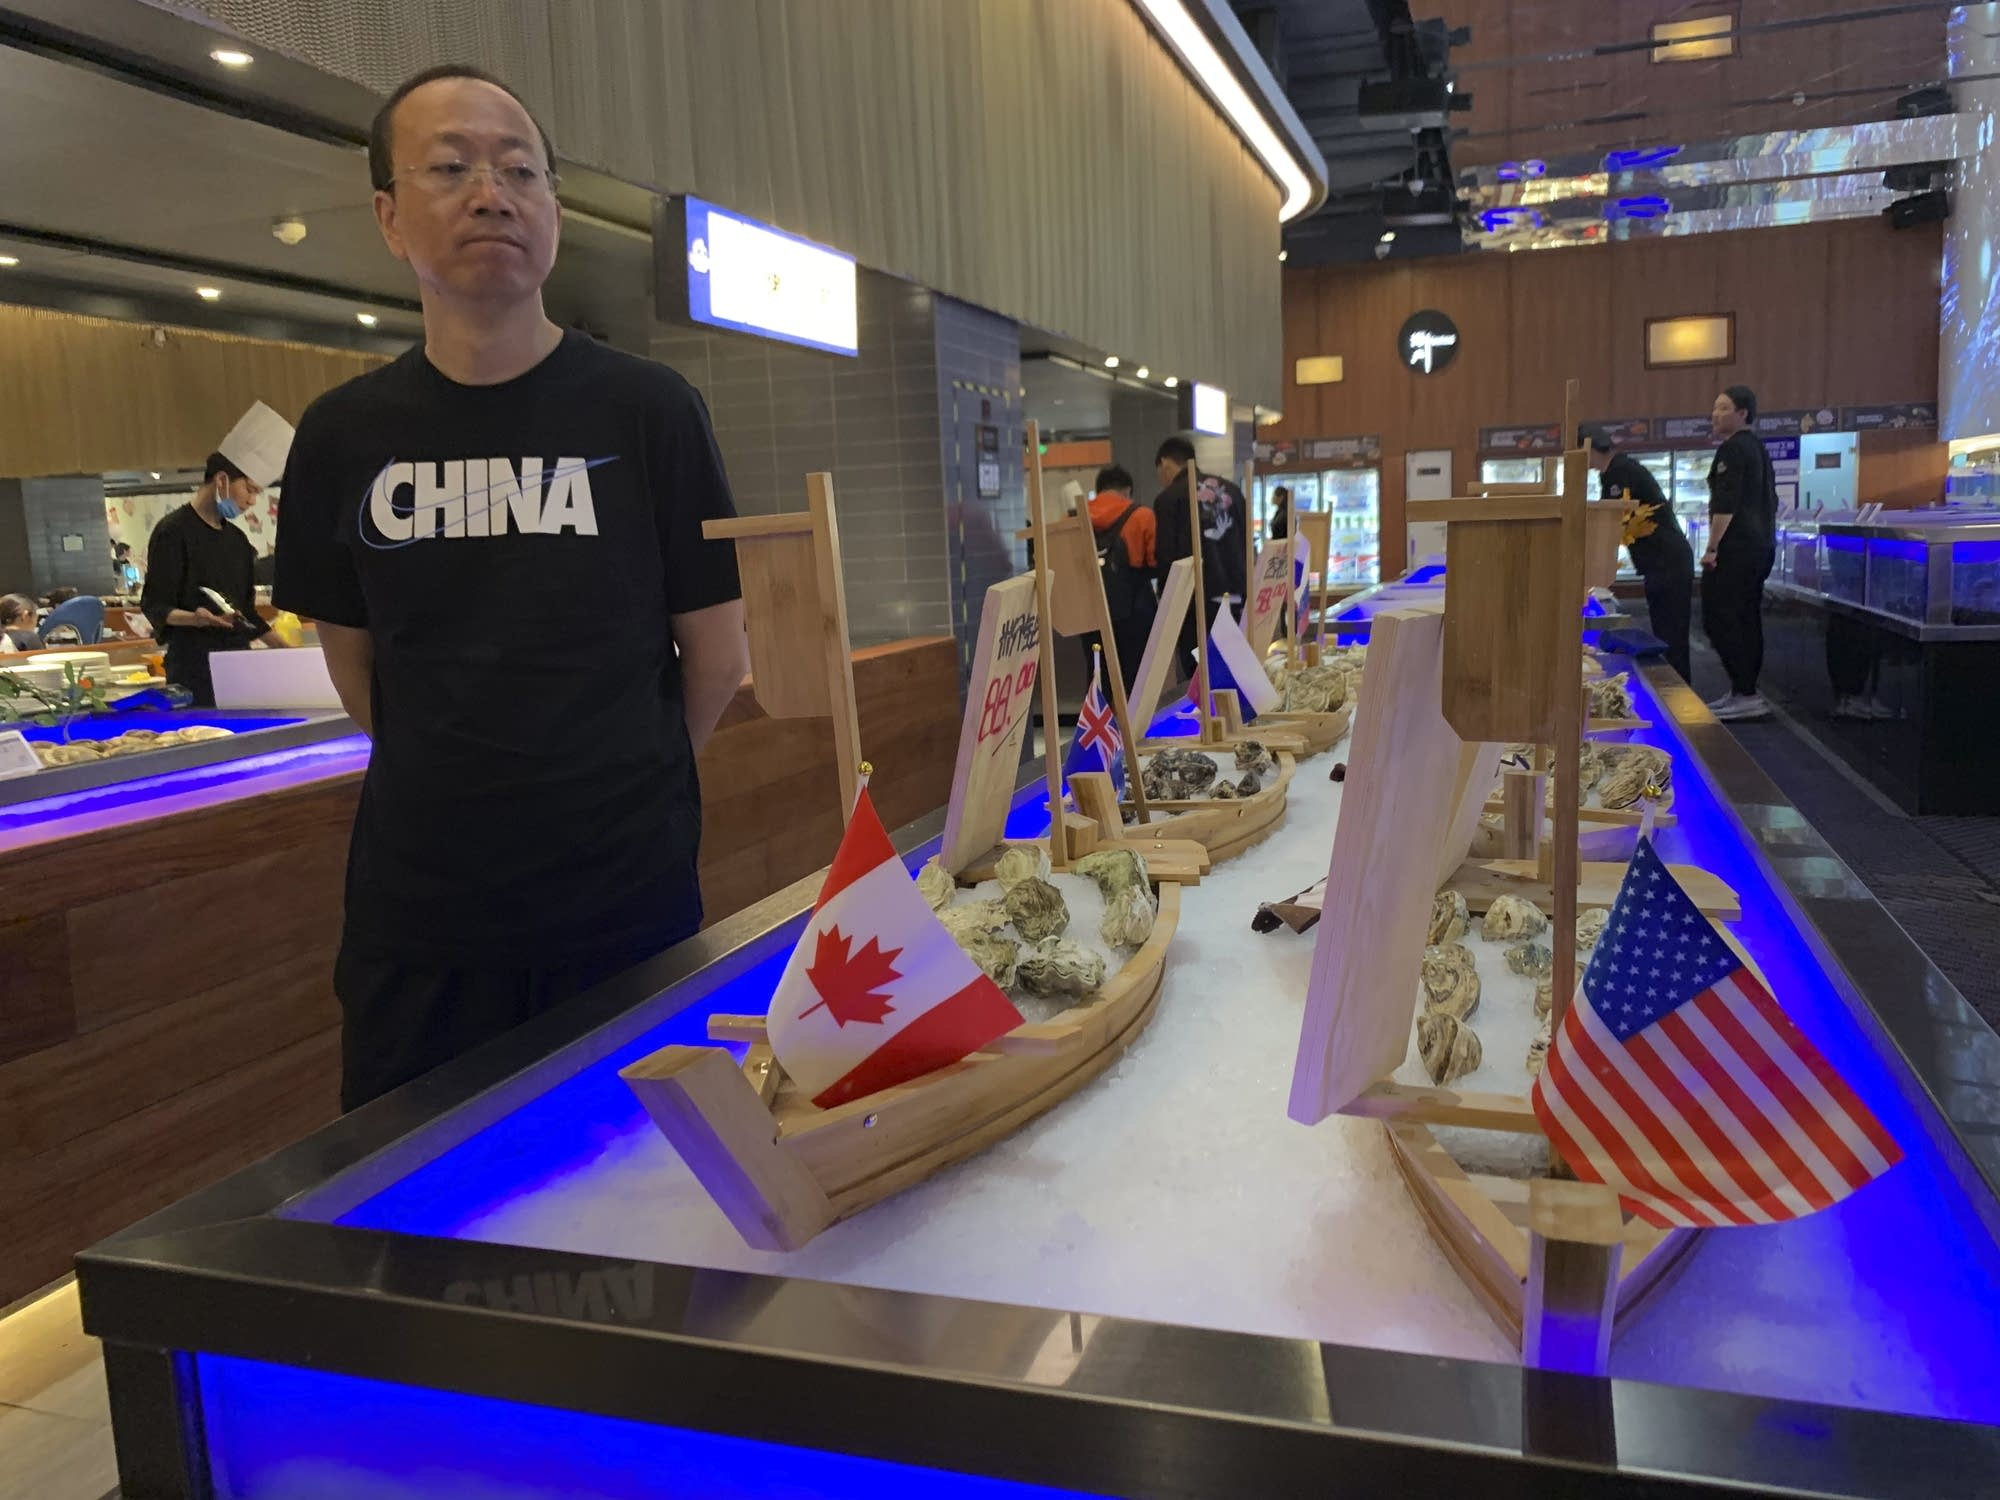 A shopper eyes display of seafood including oysters from the U.S.